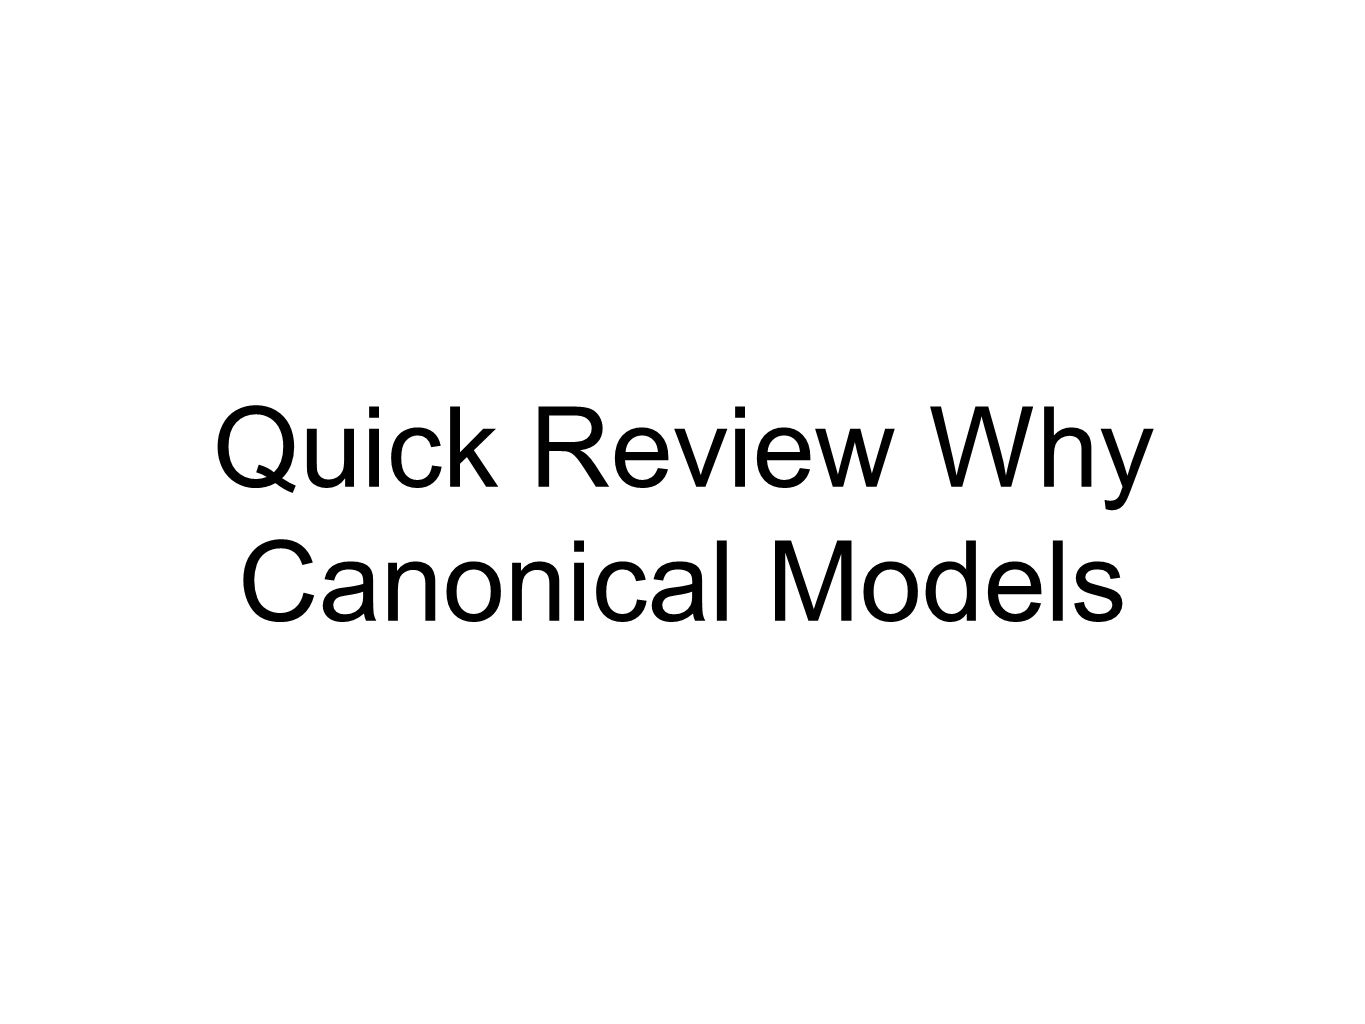 Quick Review Why Canonical Models